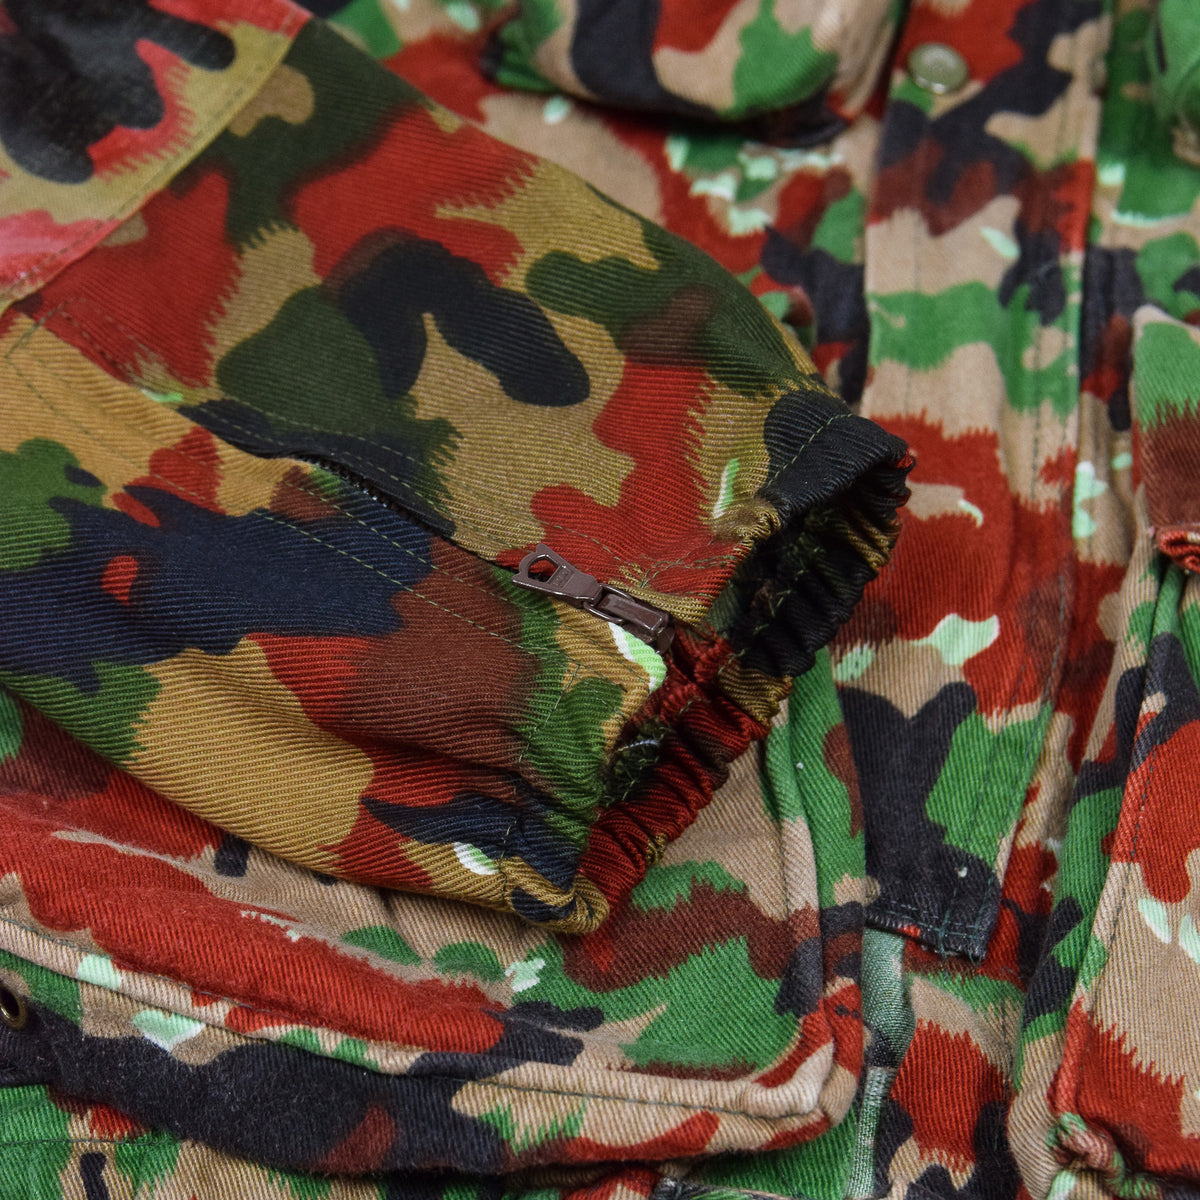 Vintage 70s Swiss Army Alpenflage Camo Sniper Combat Field Jacket M / L cuff